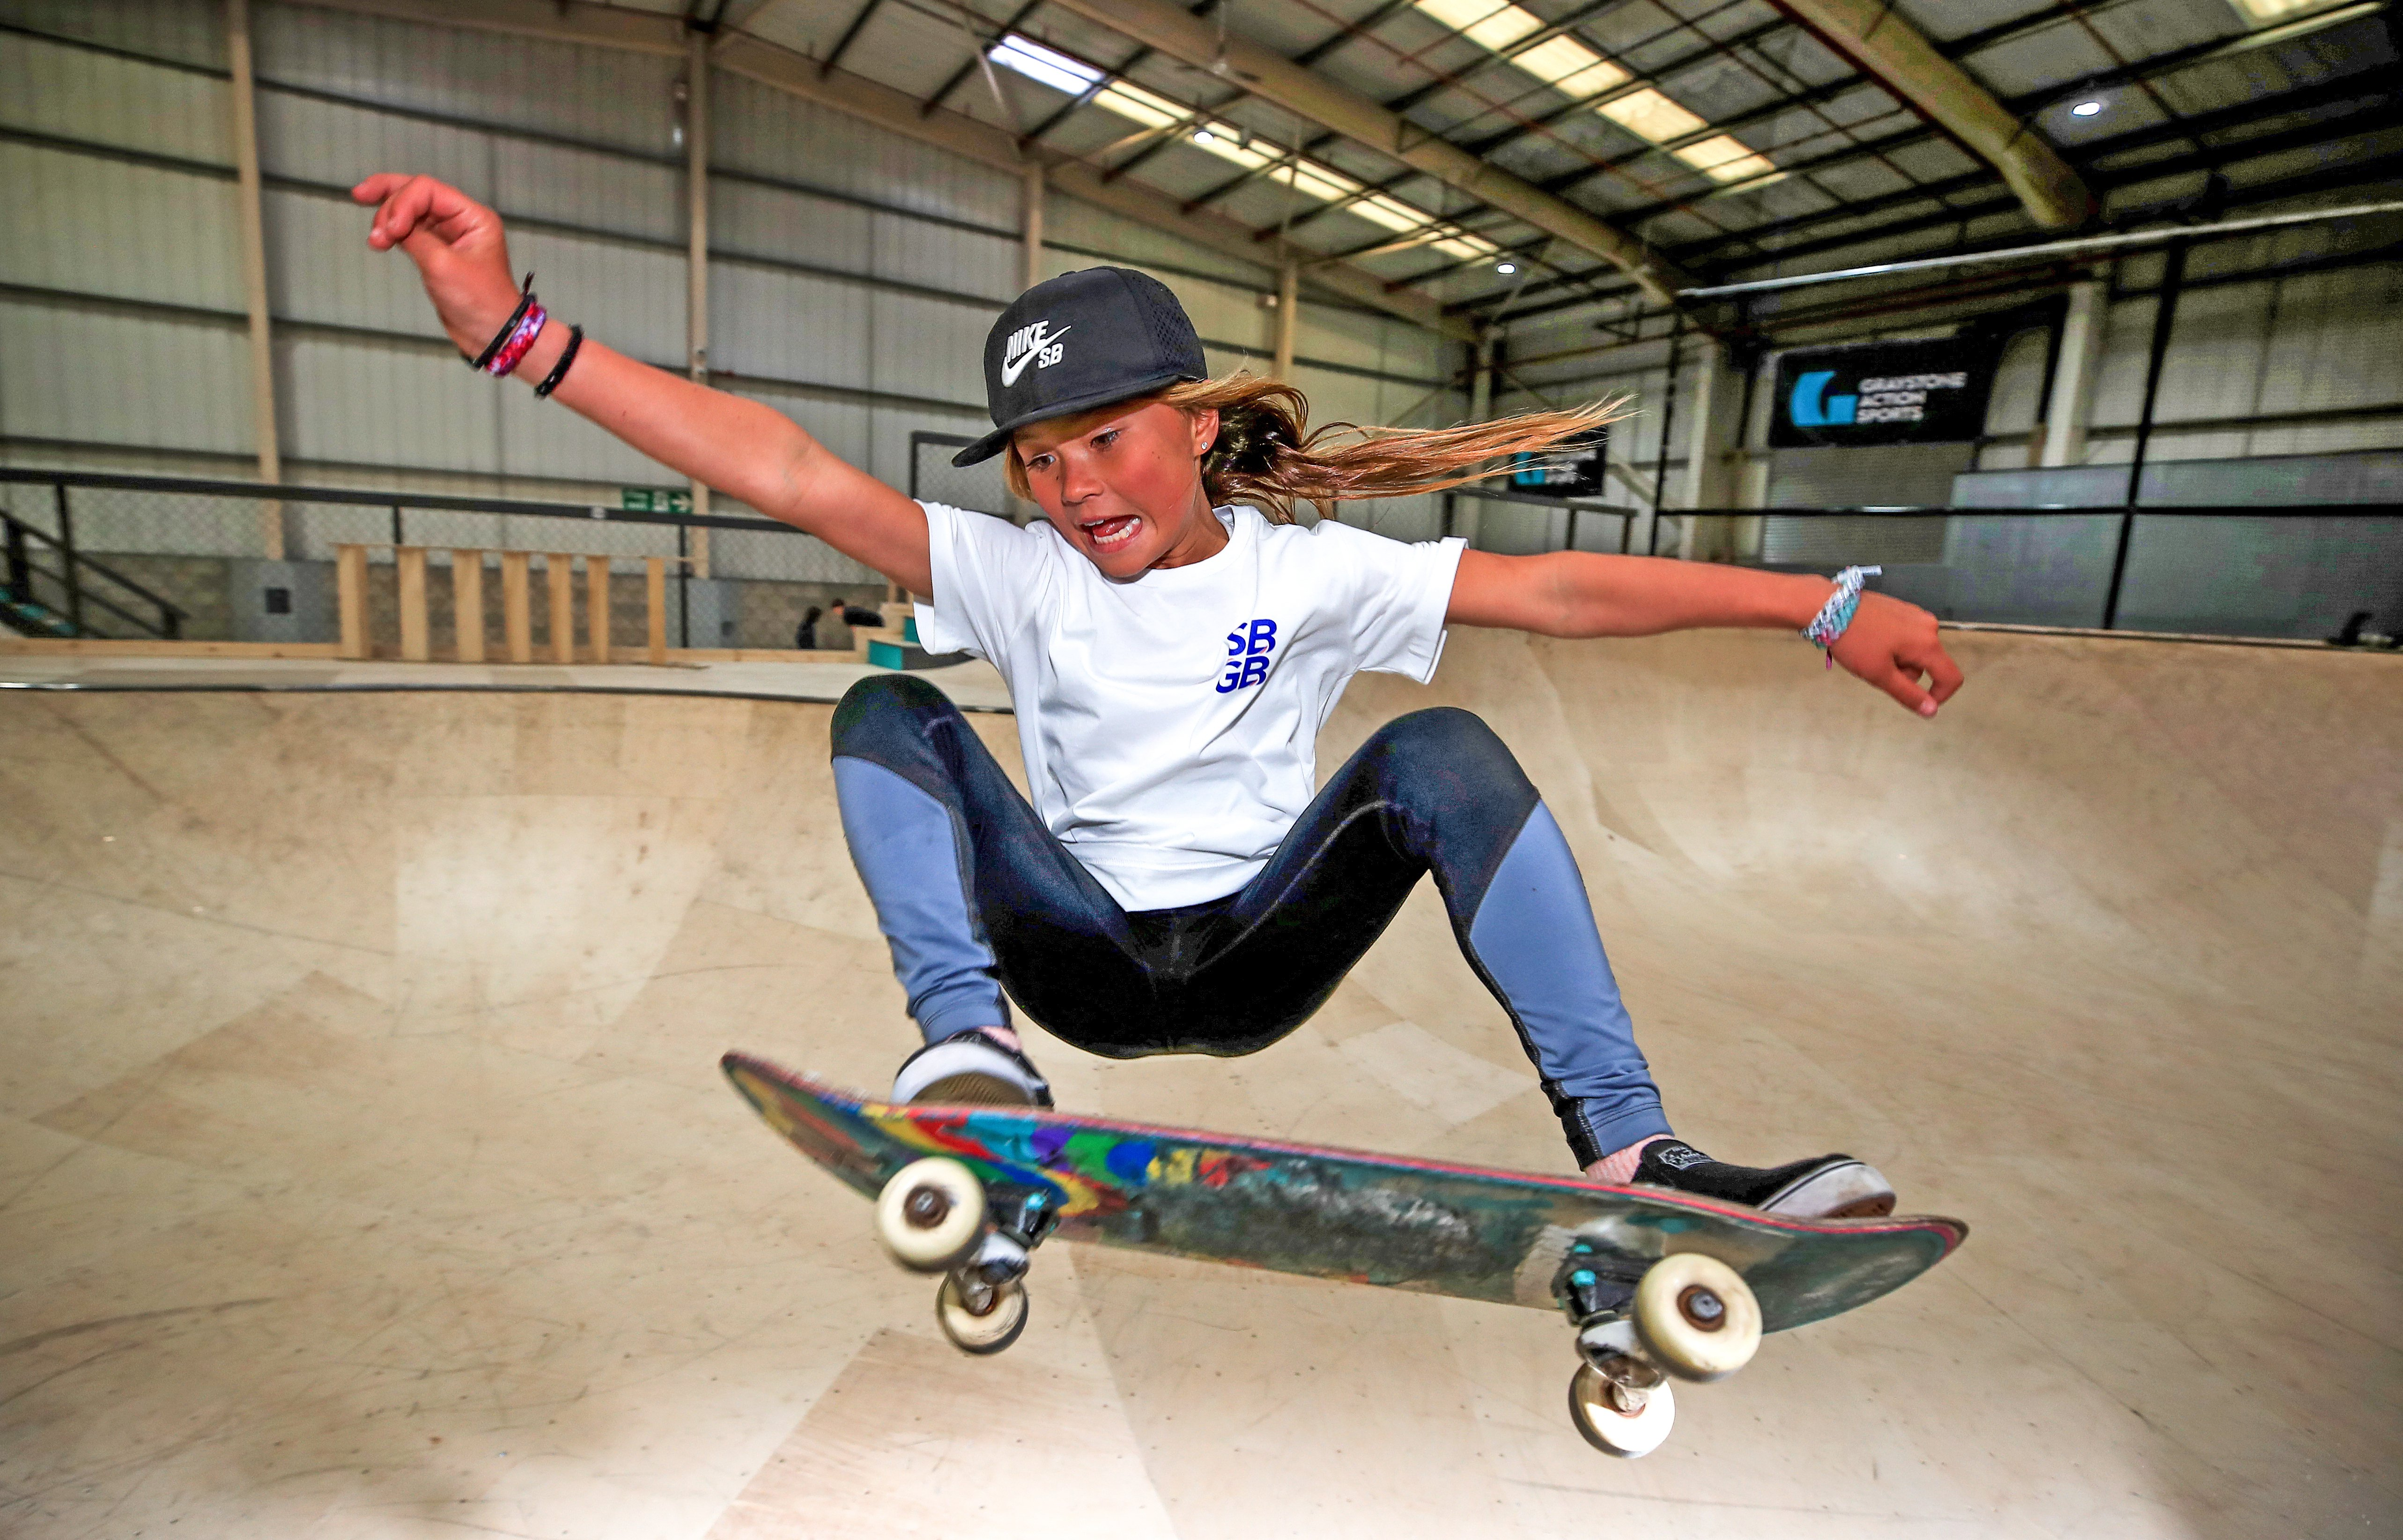 11-year-old skateboarder Sky Brown on her love for Simone Biles and her bid to become the youngest British Olympian